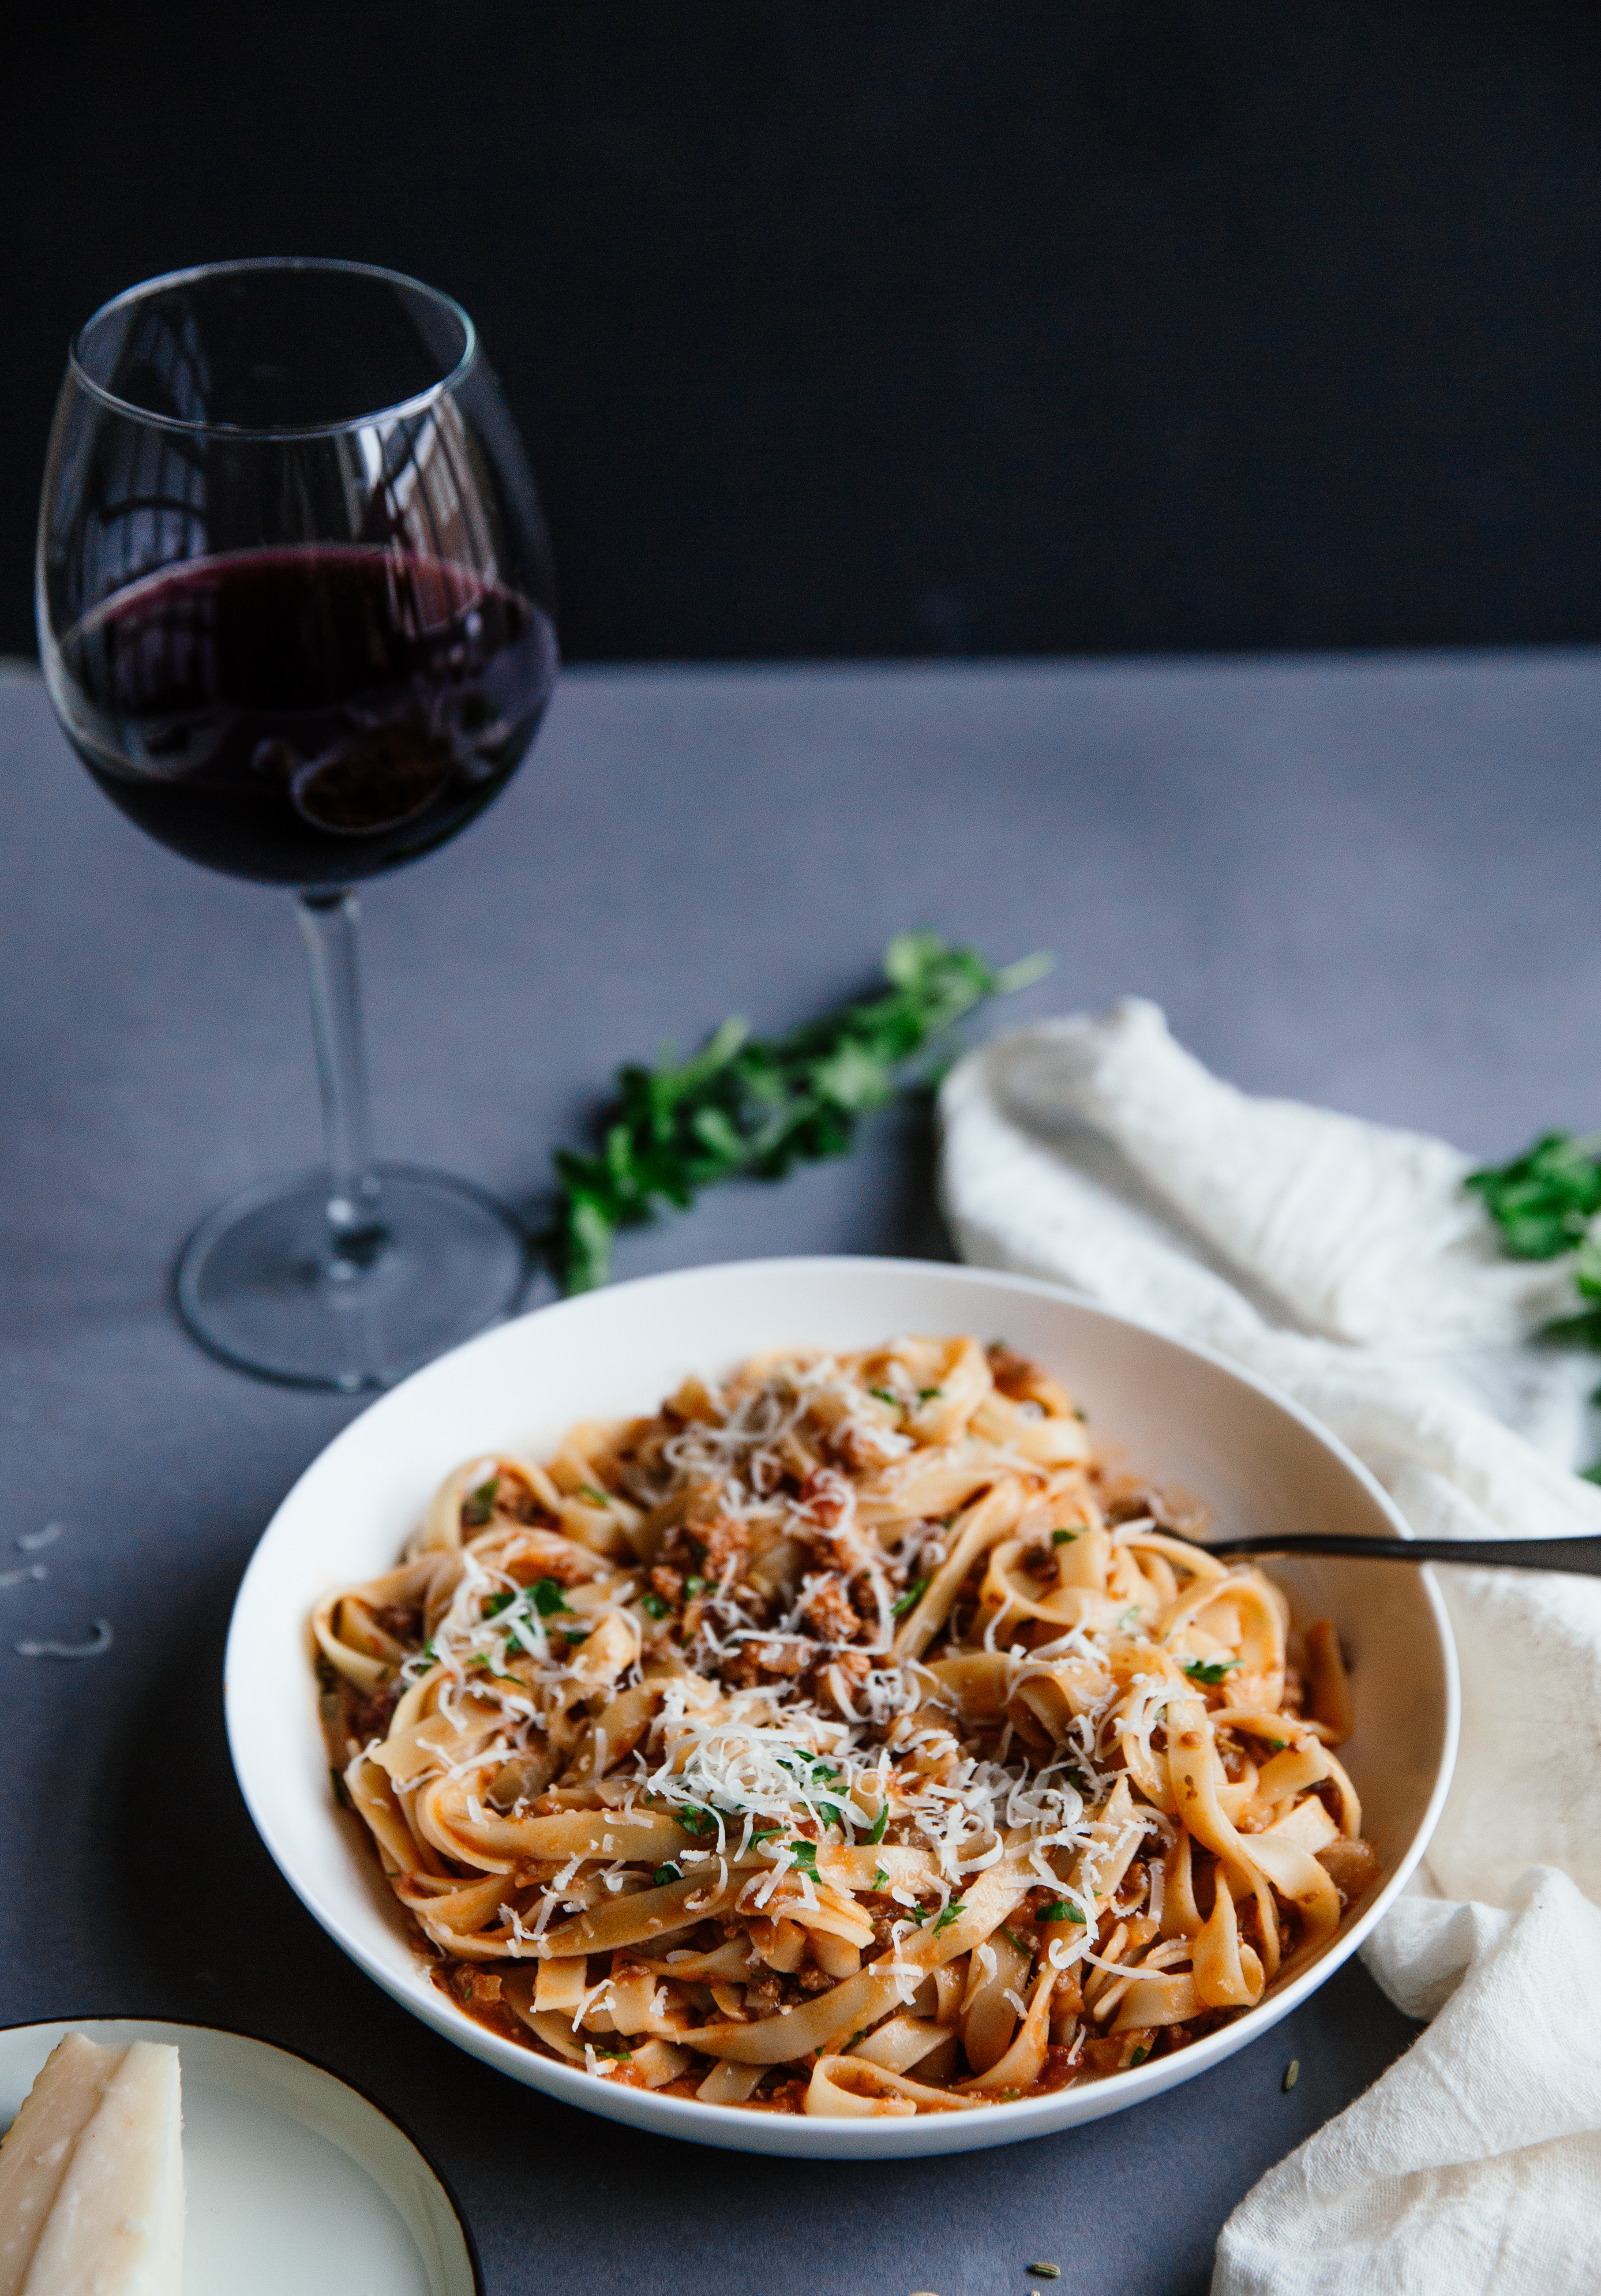 Sausage and porcini bolognese